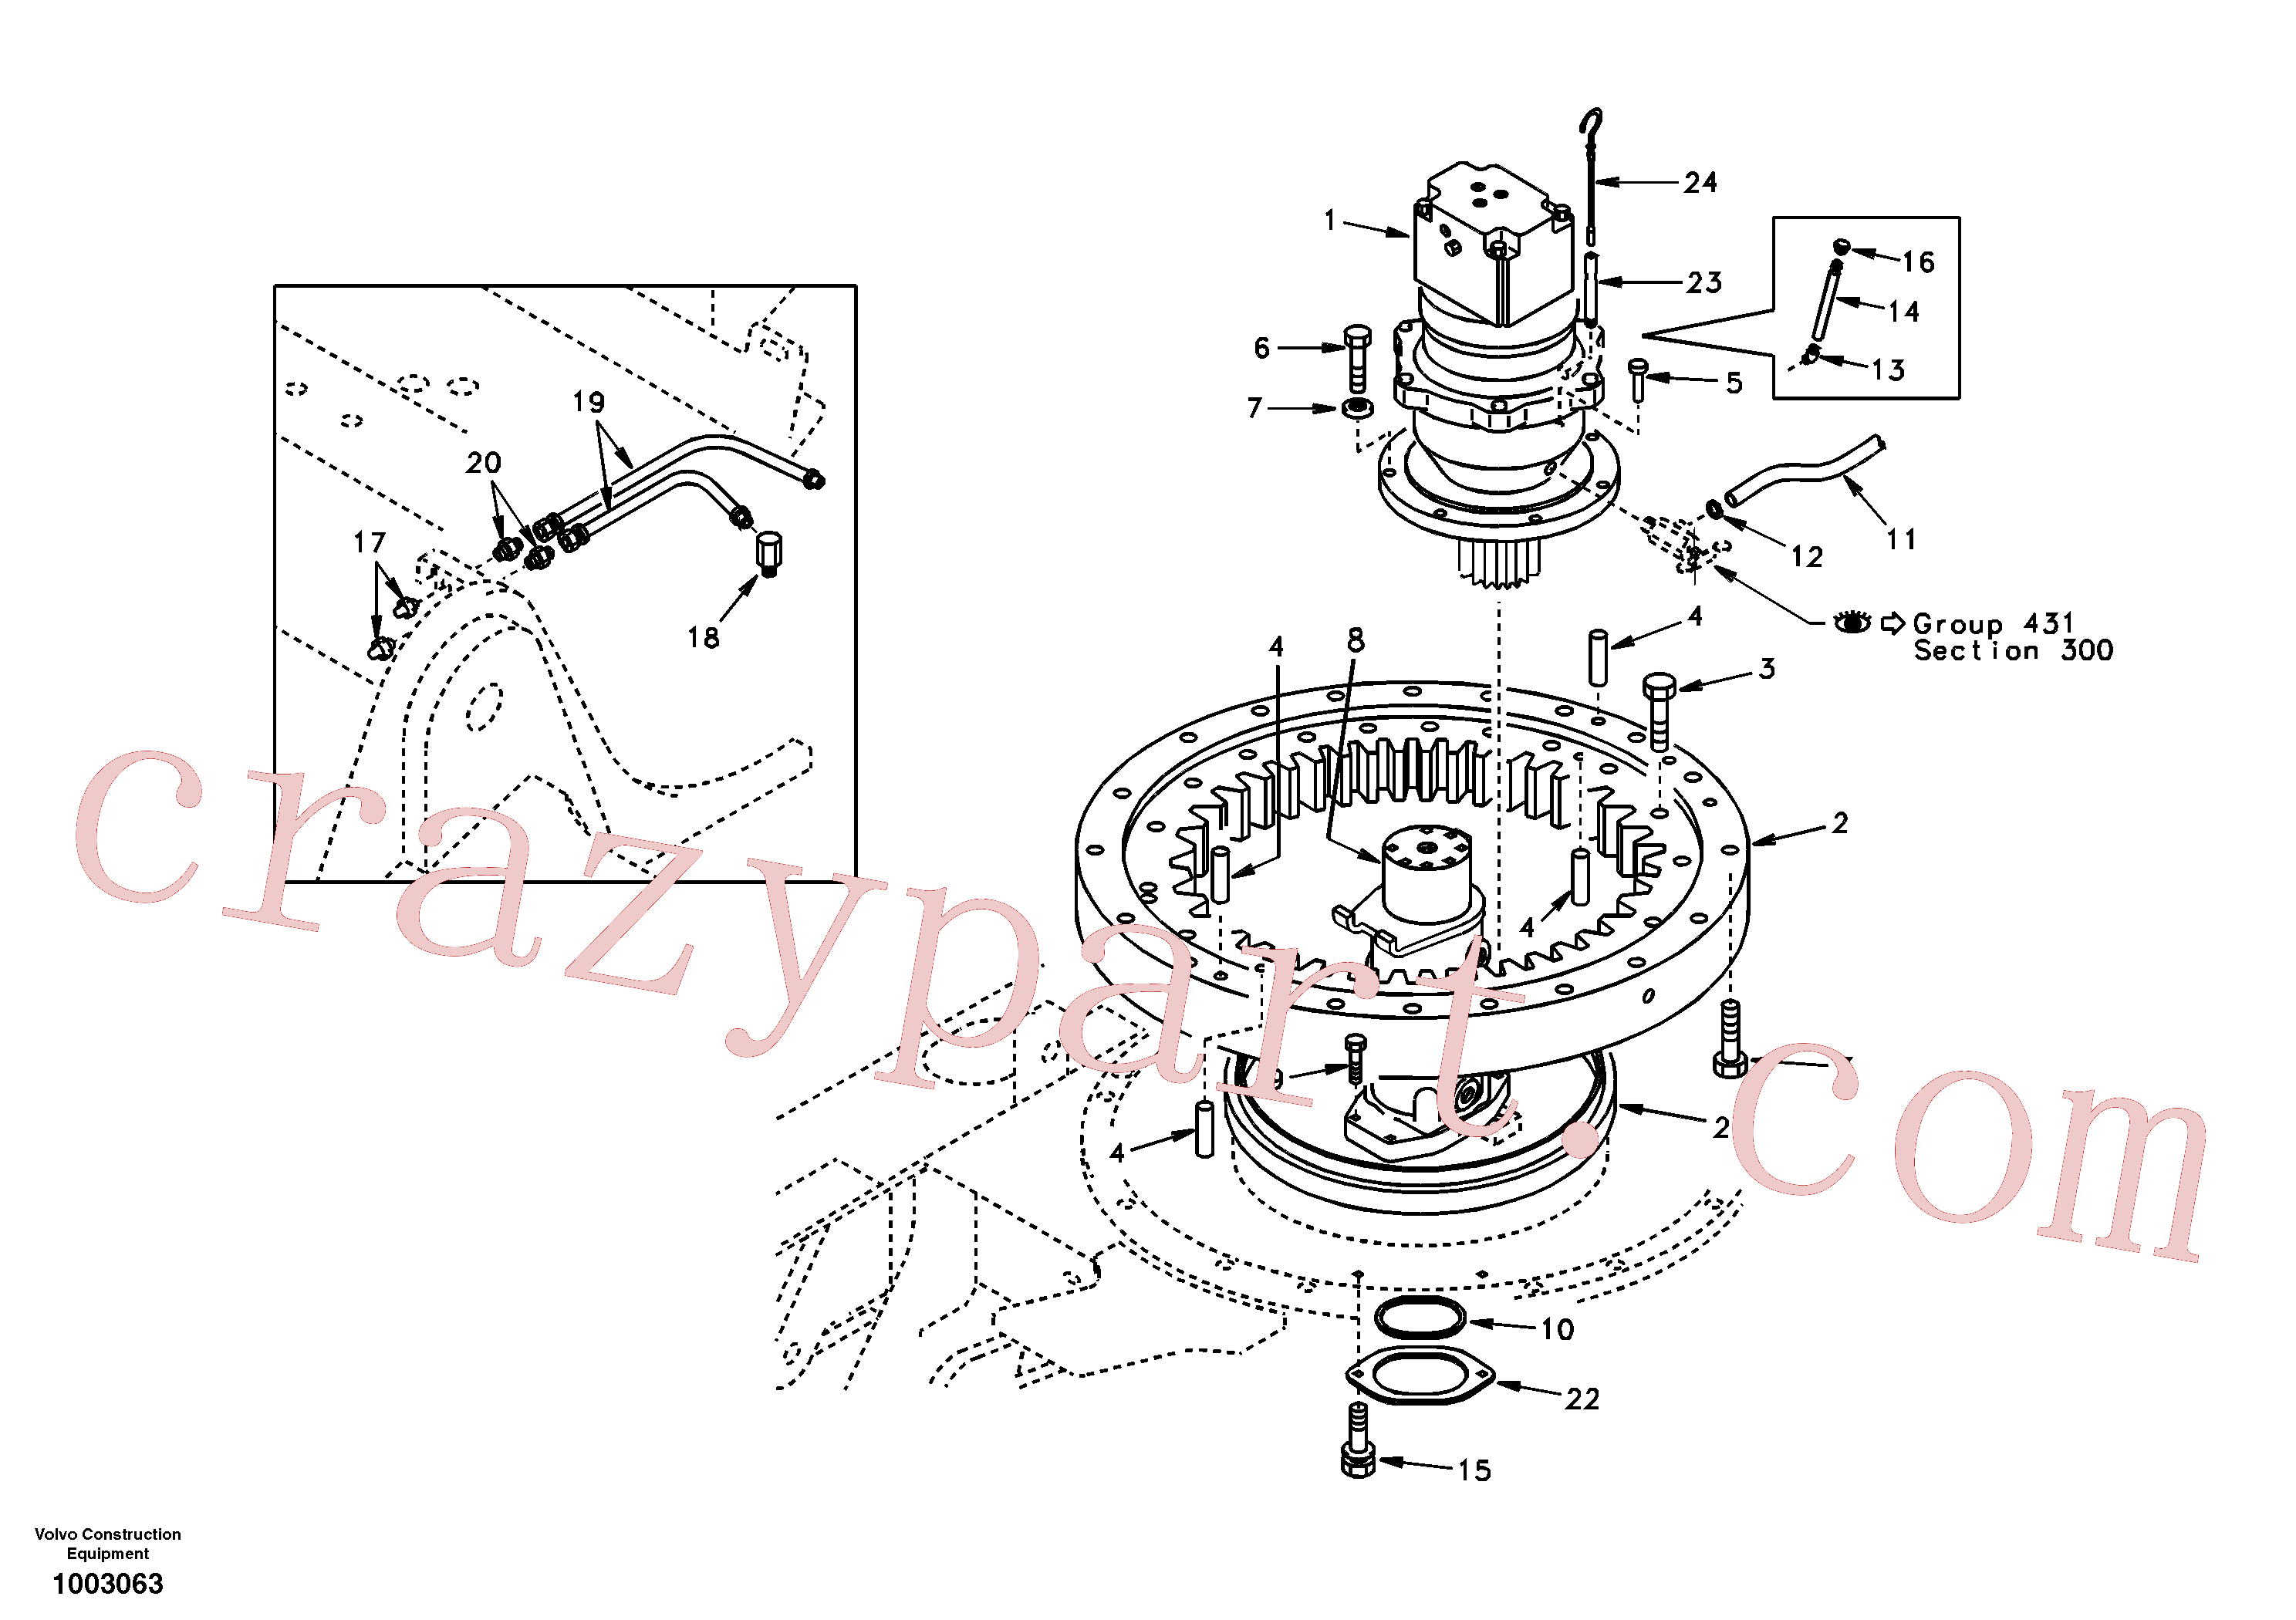 SA9349-00020 for Volvo Swing system(1003063 assembly)